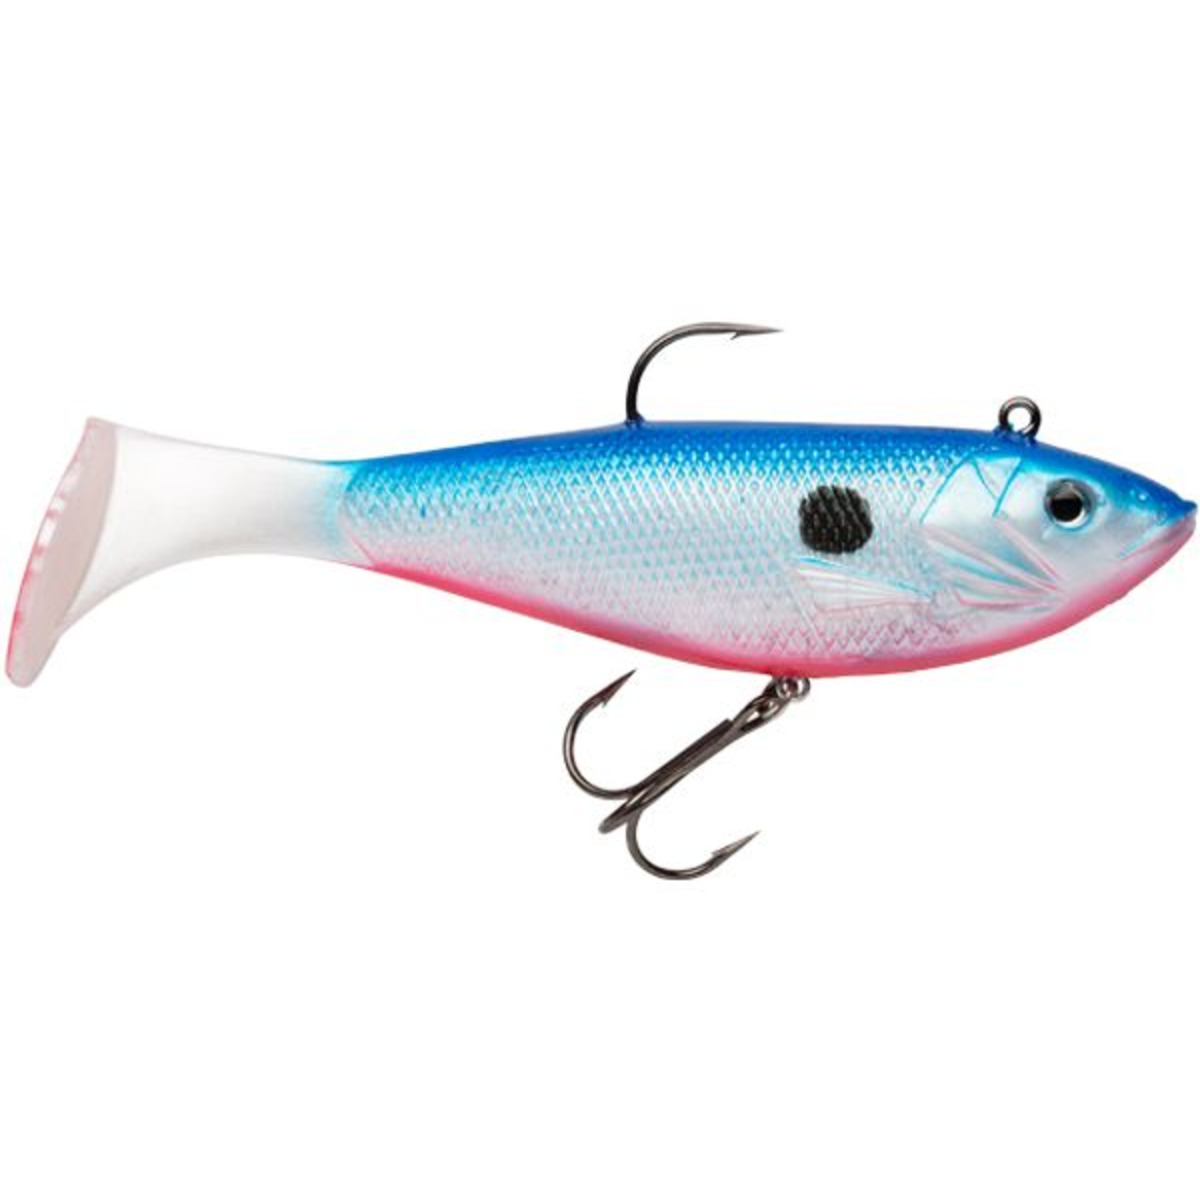 Storm Suspending Wild Tail Shad - 20 cm - 65 g - Red Belly Shad